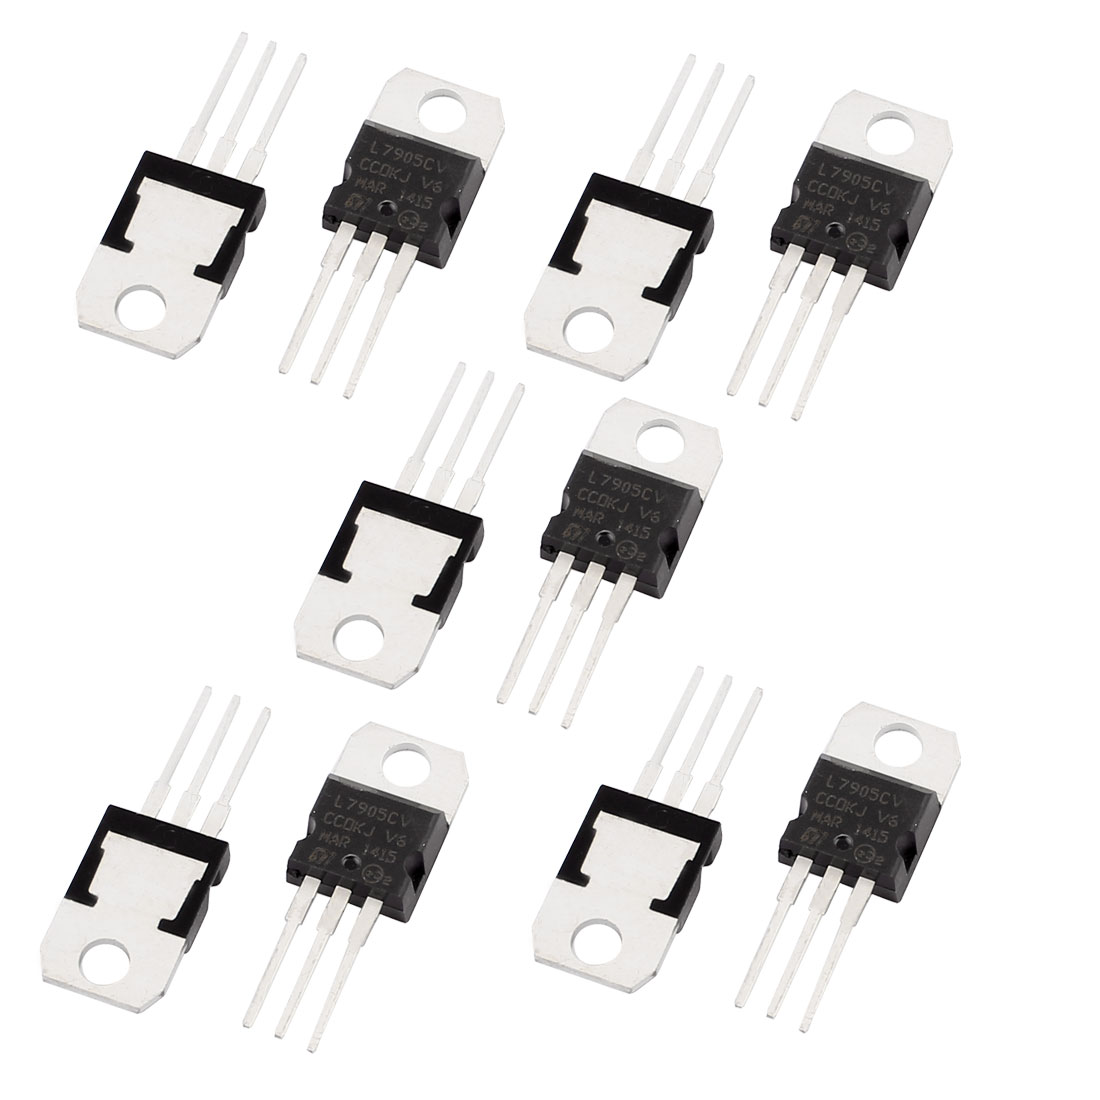 10 Pcs 5V 1A 3 Pin Terminals L7905CV Negative Voltage Regulator TO-220